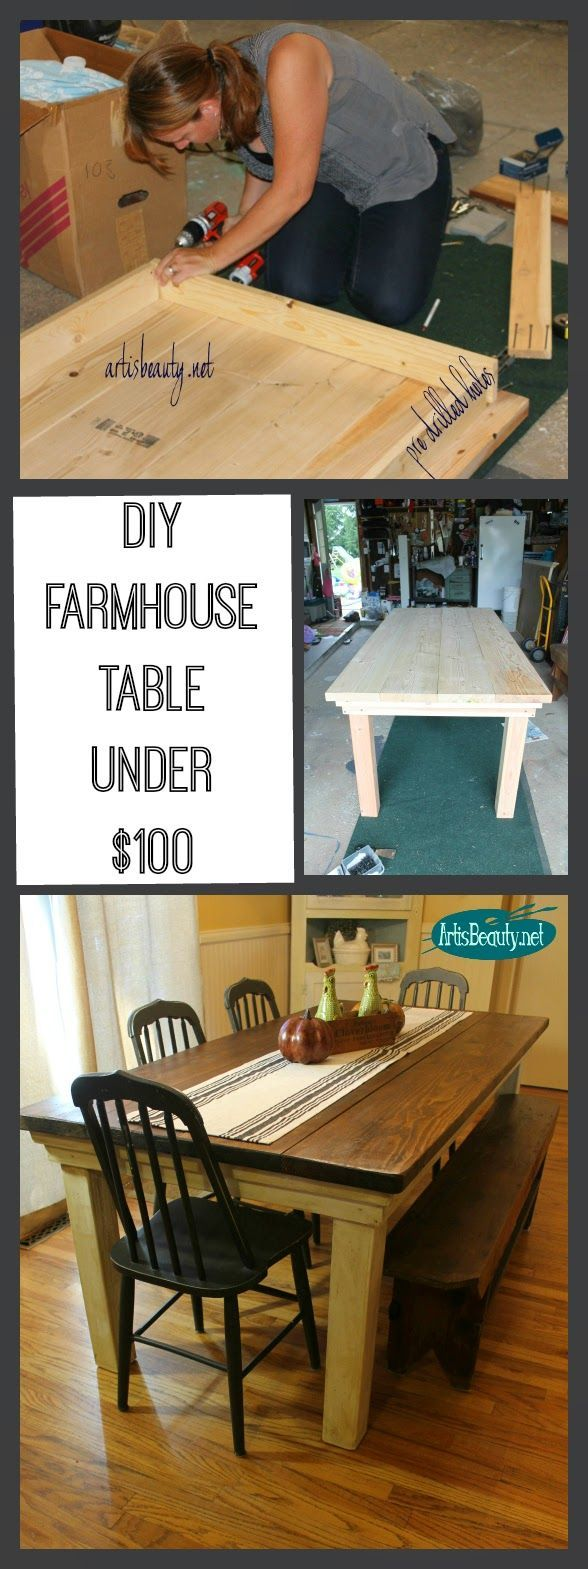 DIY your photo charms, 100% compatible with Pandora bracelets. Make your gifts special. ART IS BEAUTY: How to build your own FarmHouse Table for under $100. I want to make one for the deck too!